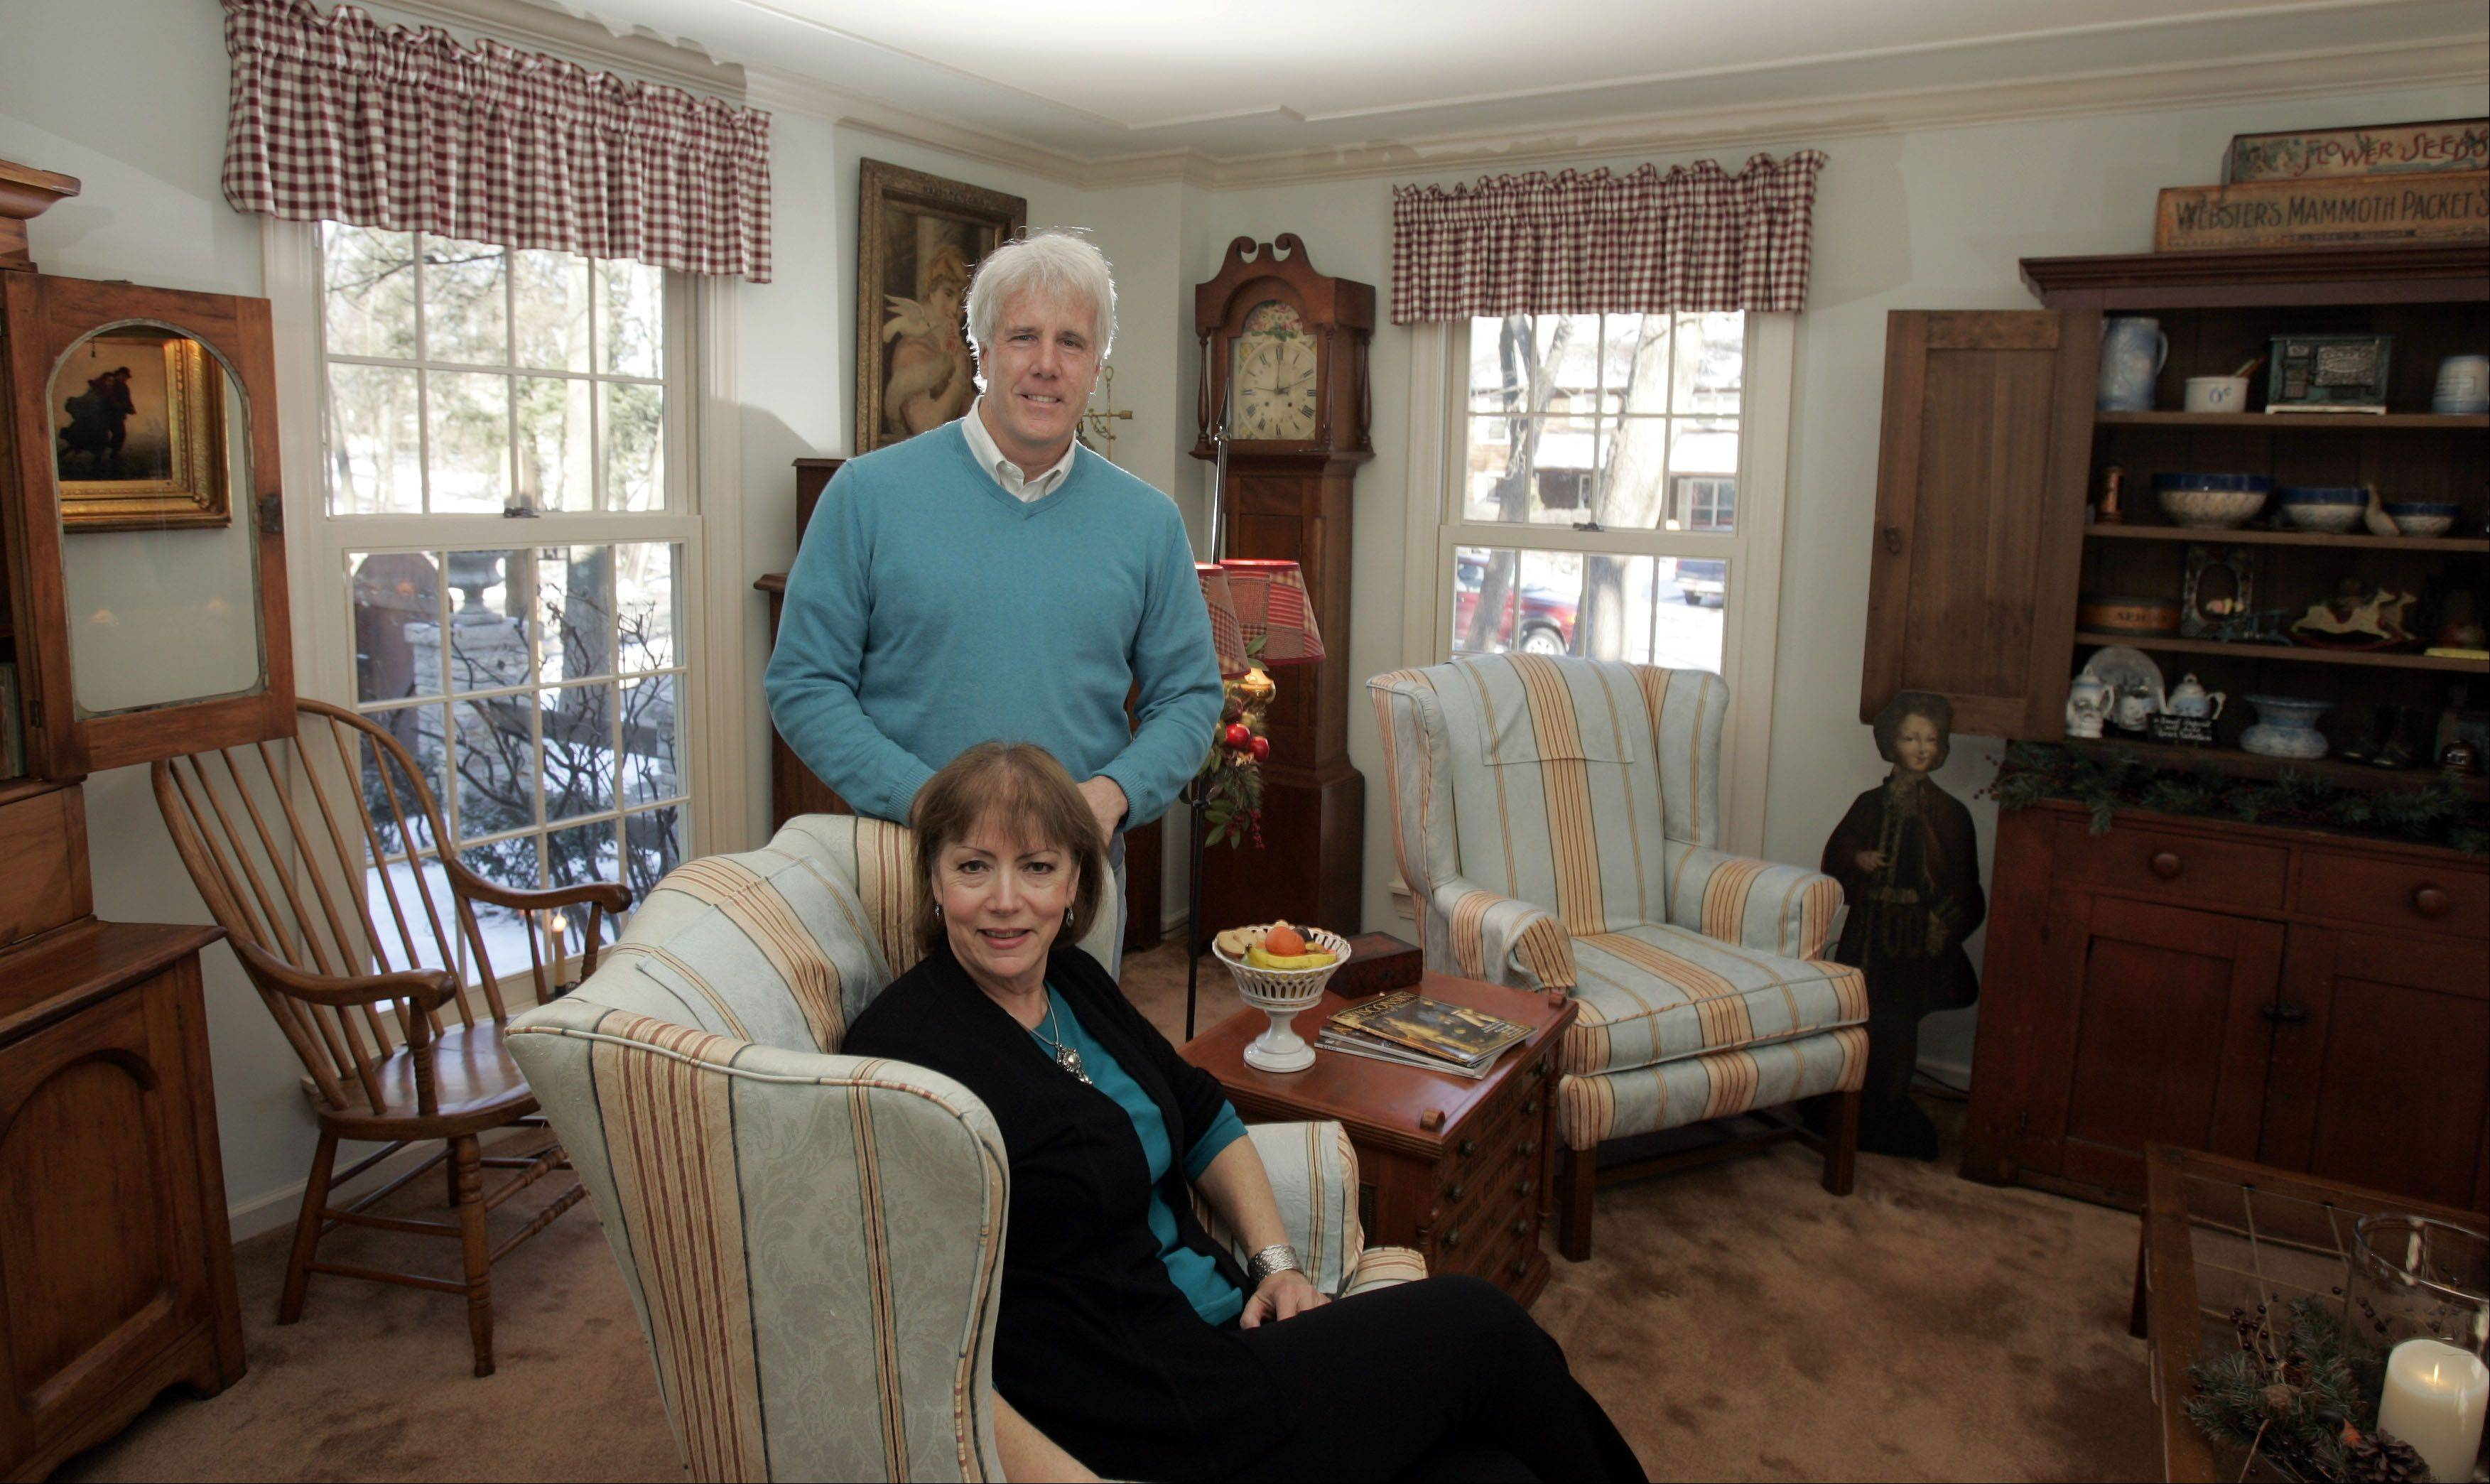 Jim and Debbie McArdle have learned a lot about antiques in their decades of collecting.